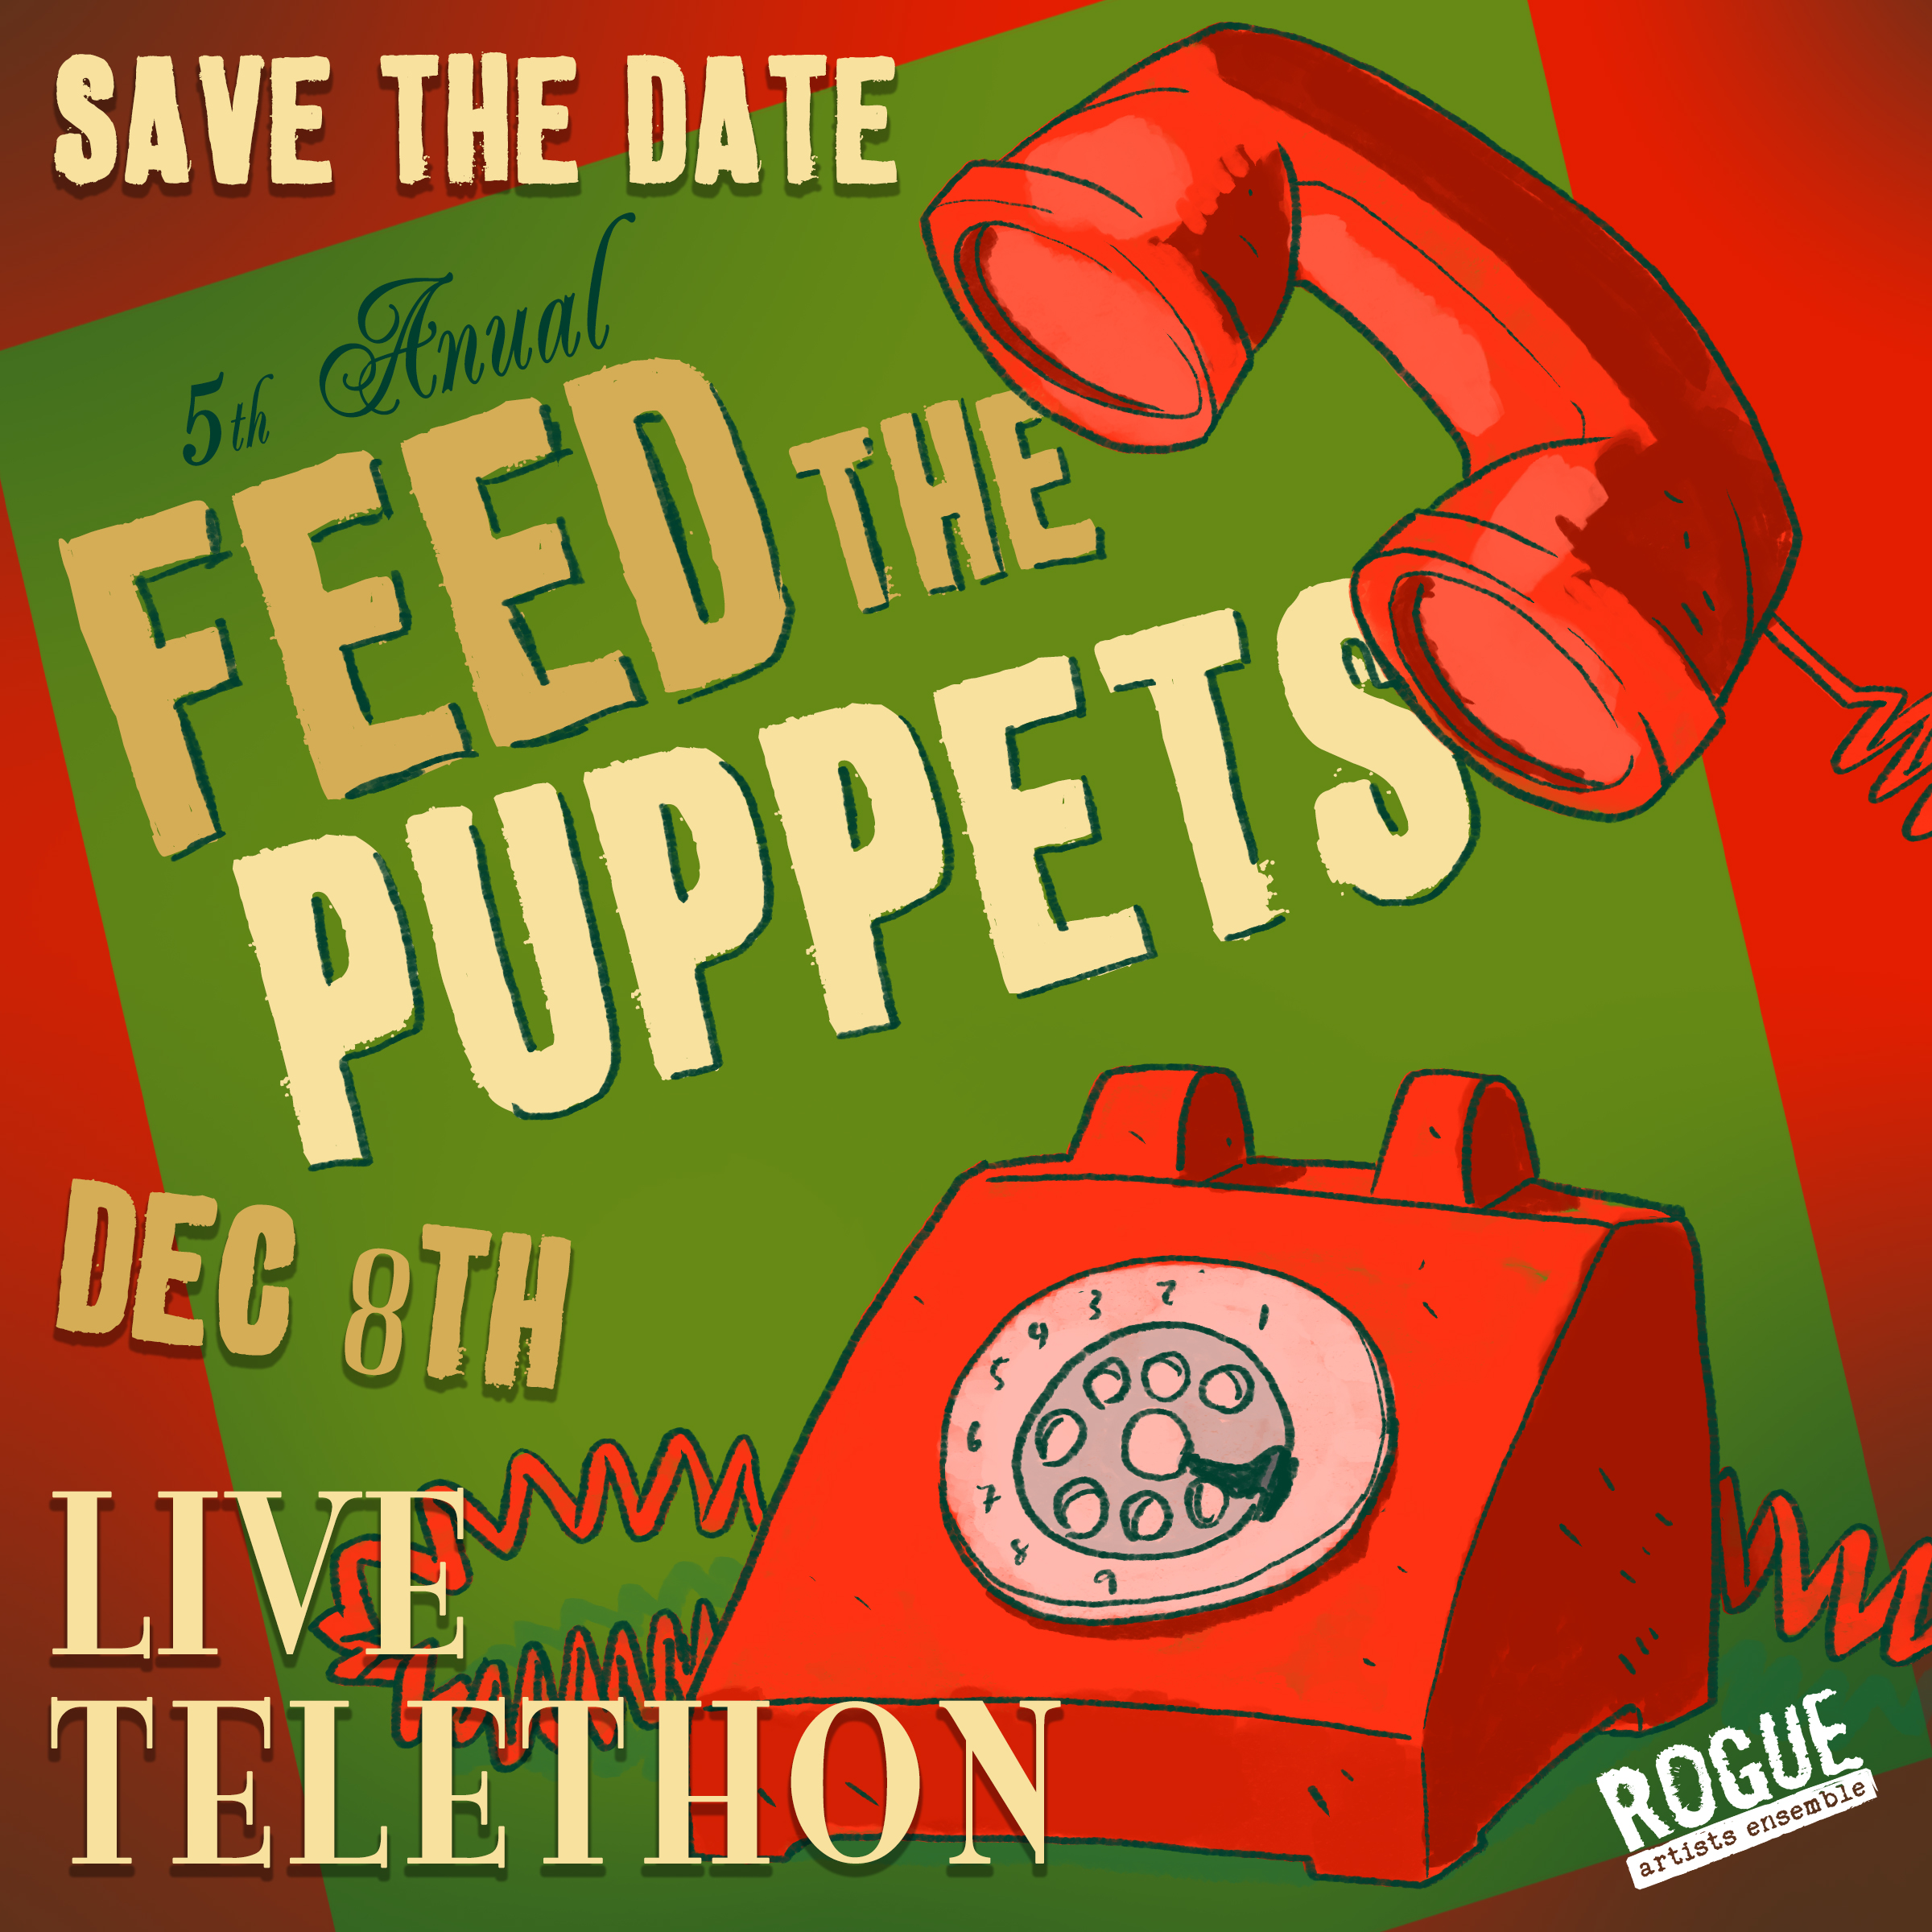 rogue_telethon2018_save the date 001_WiP 003.jpg